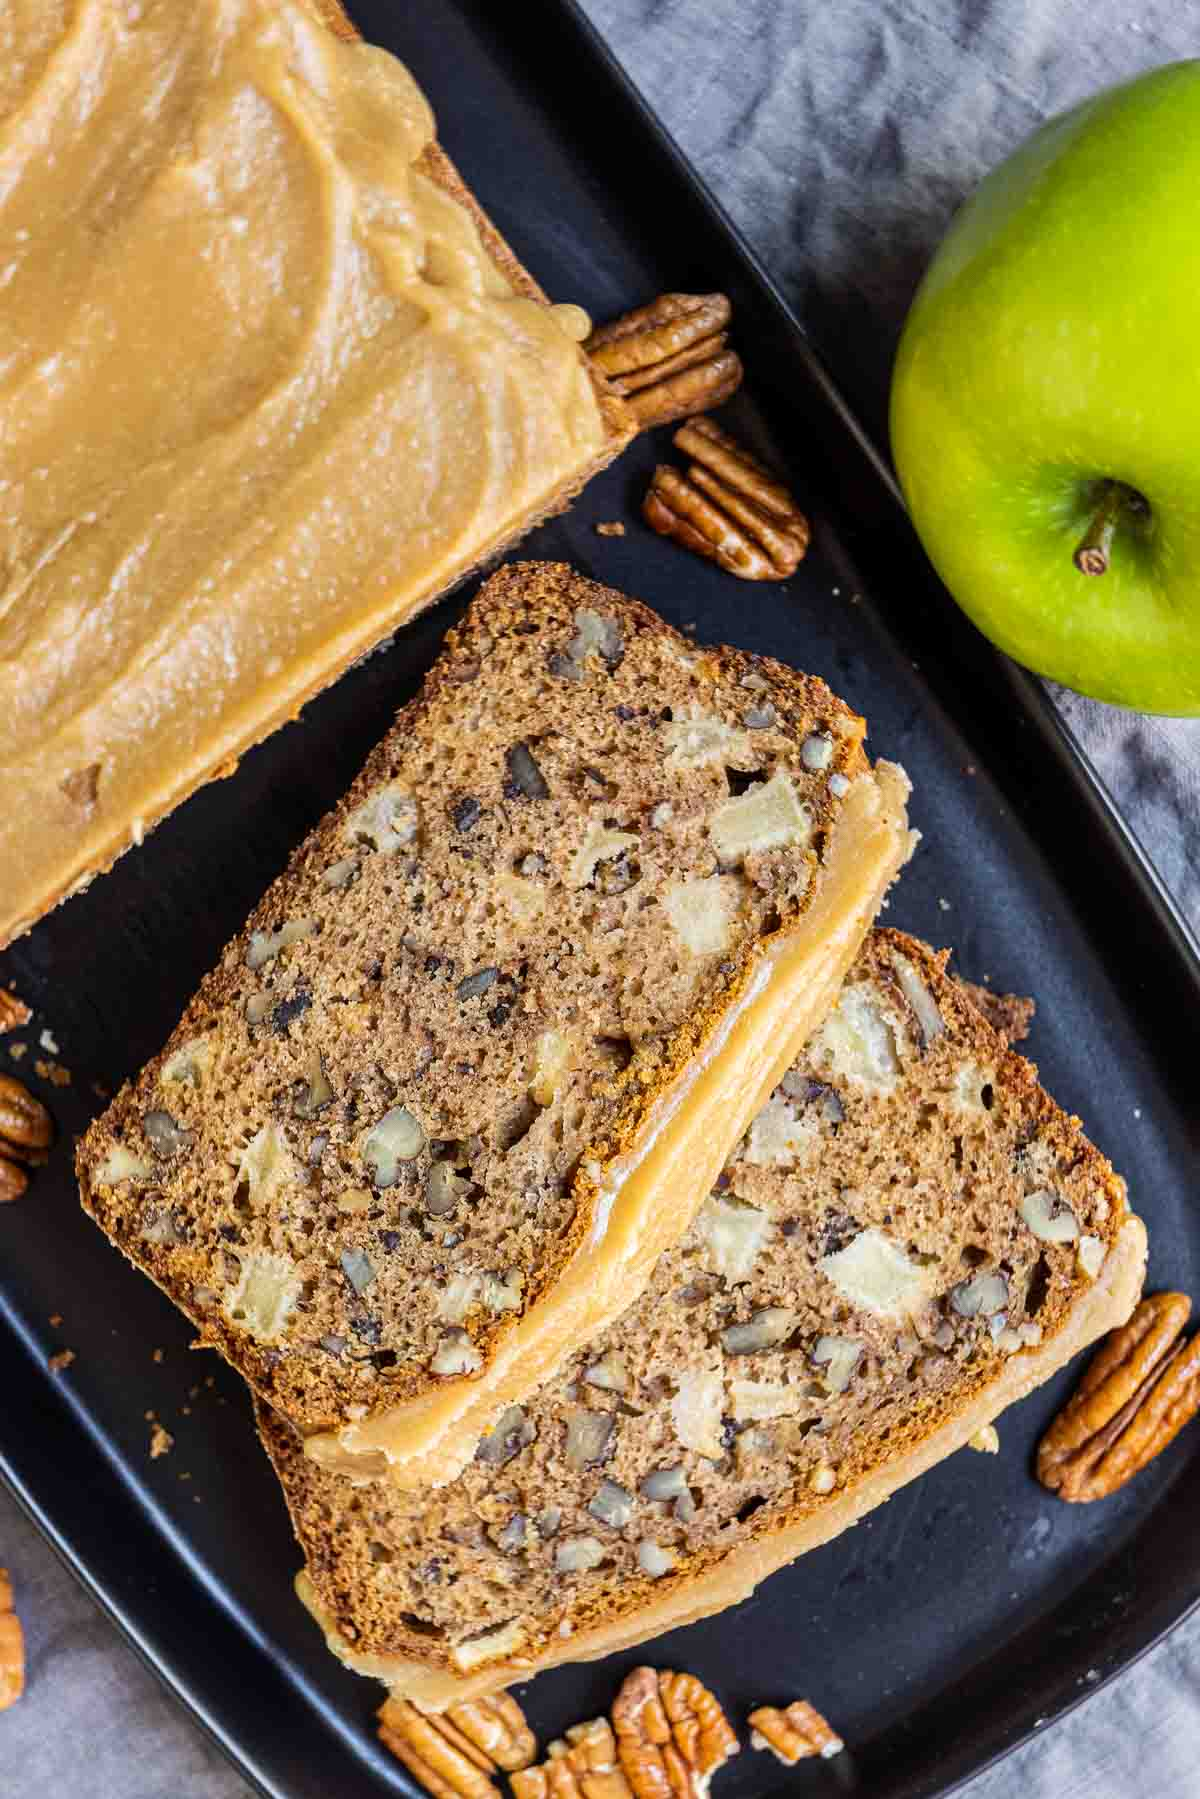 Caramel Apple Bread with pecans